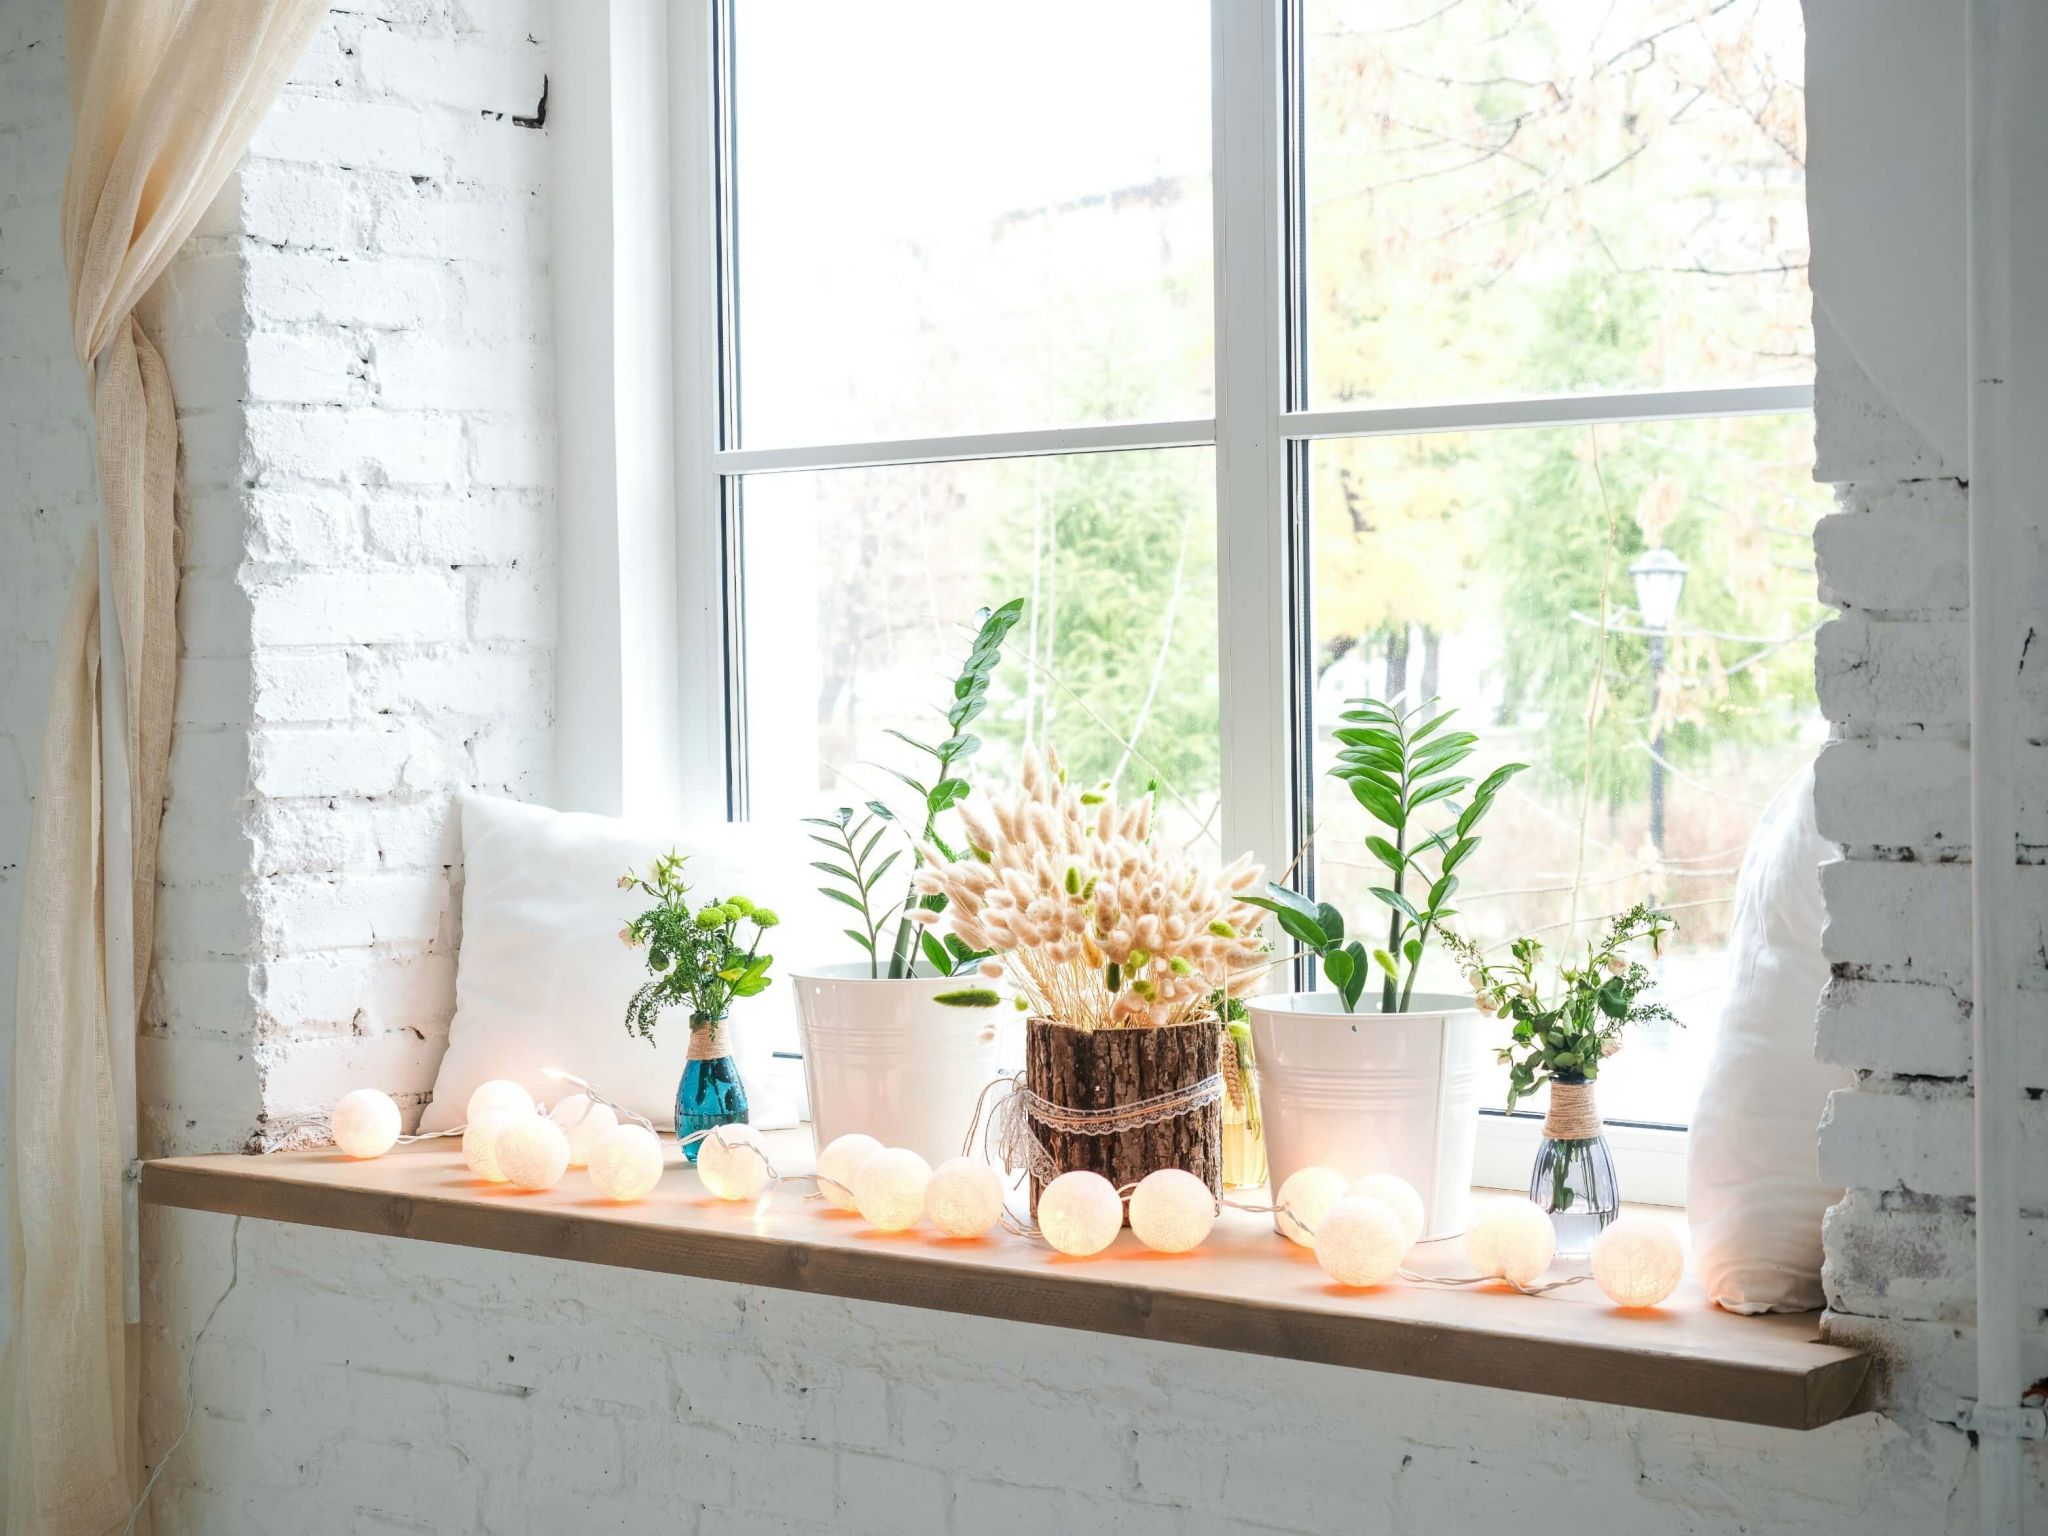 make your student accommodation feel like home - window sill decorated with plants and fairy lights